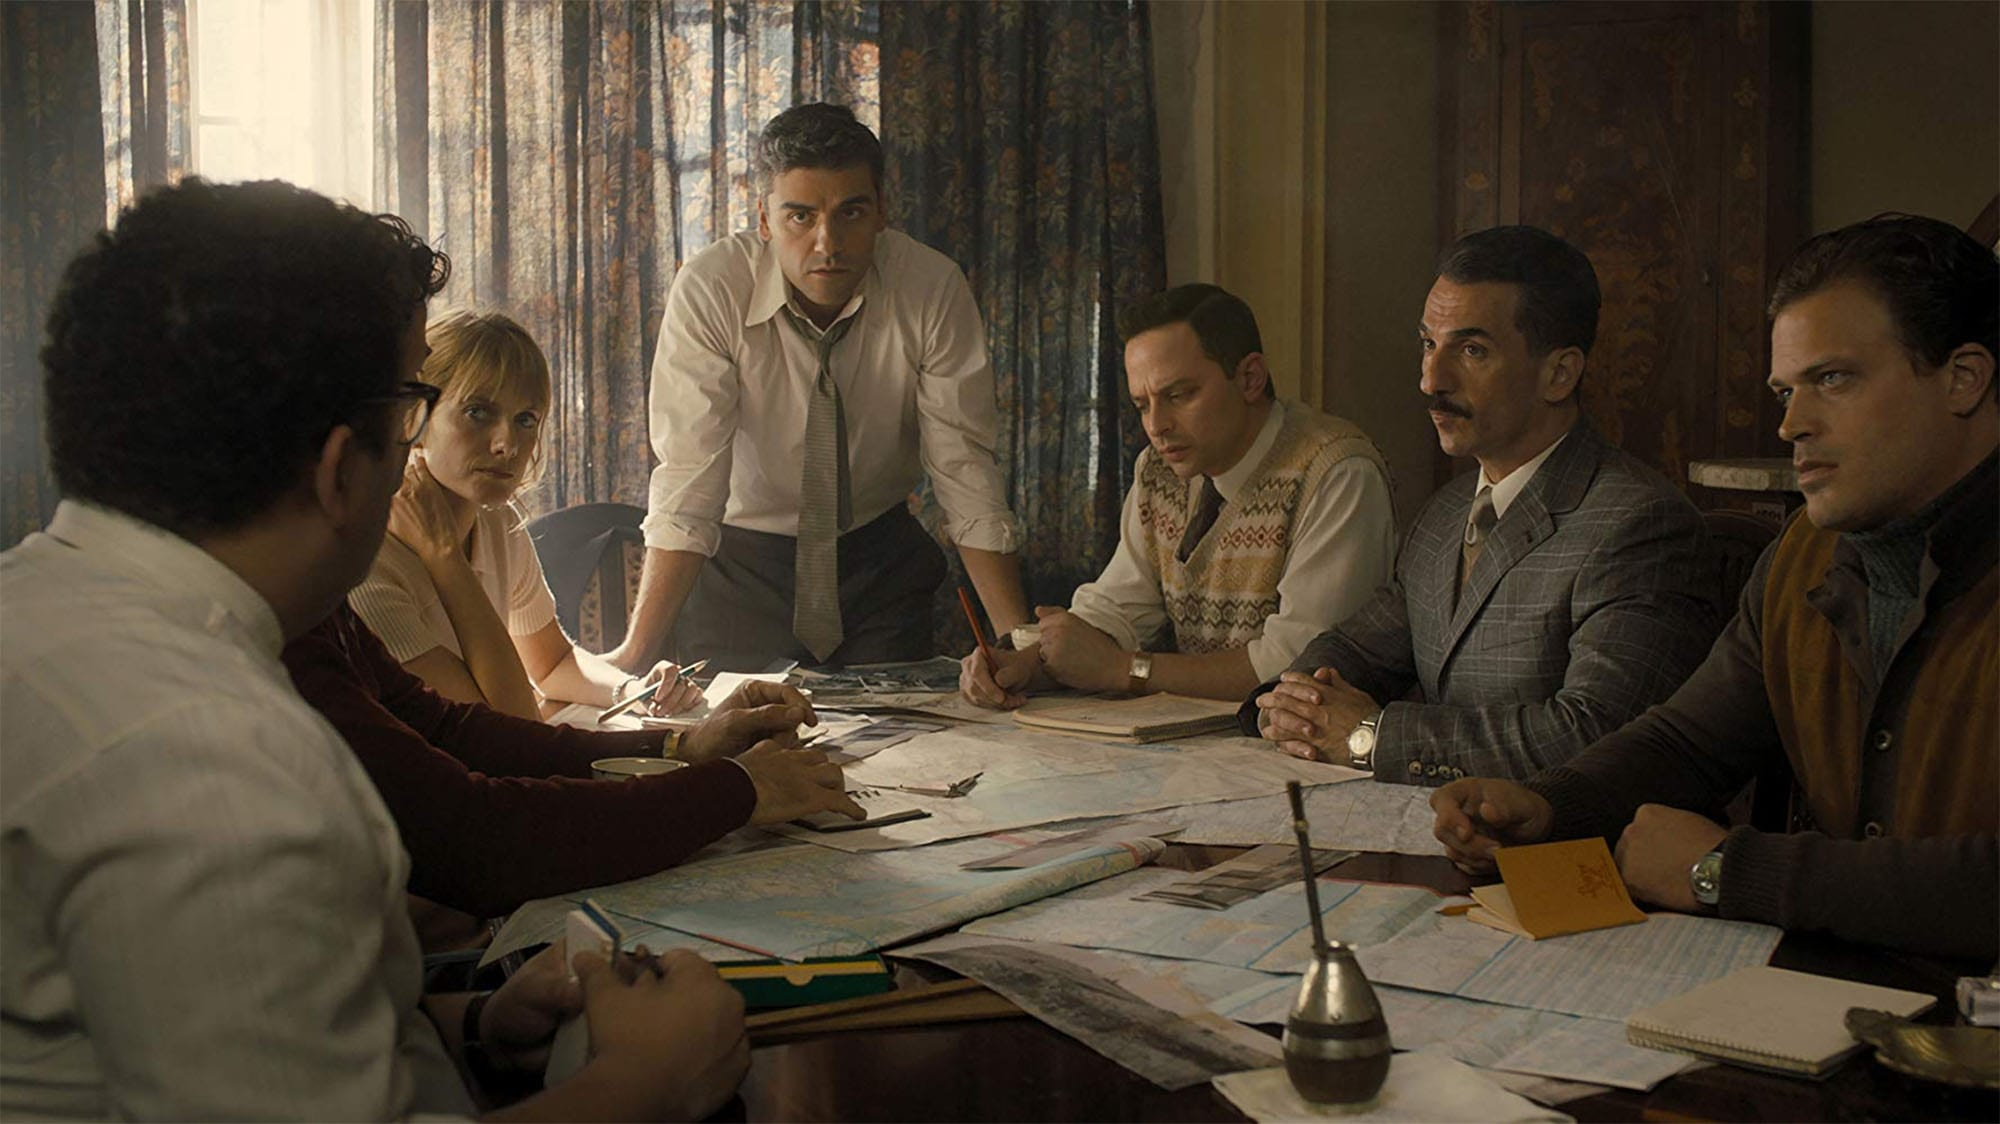 'Operation Finale' follows the 1960 mission of Mossad agent Peter Malkin capturing Nazi officer and concentration camp mastermind Adolf Eichmann.